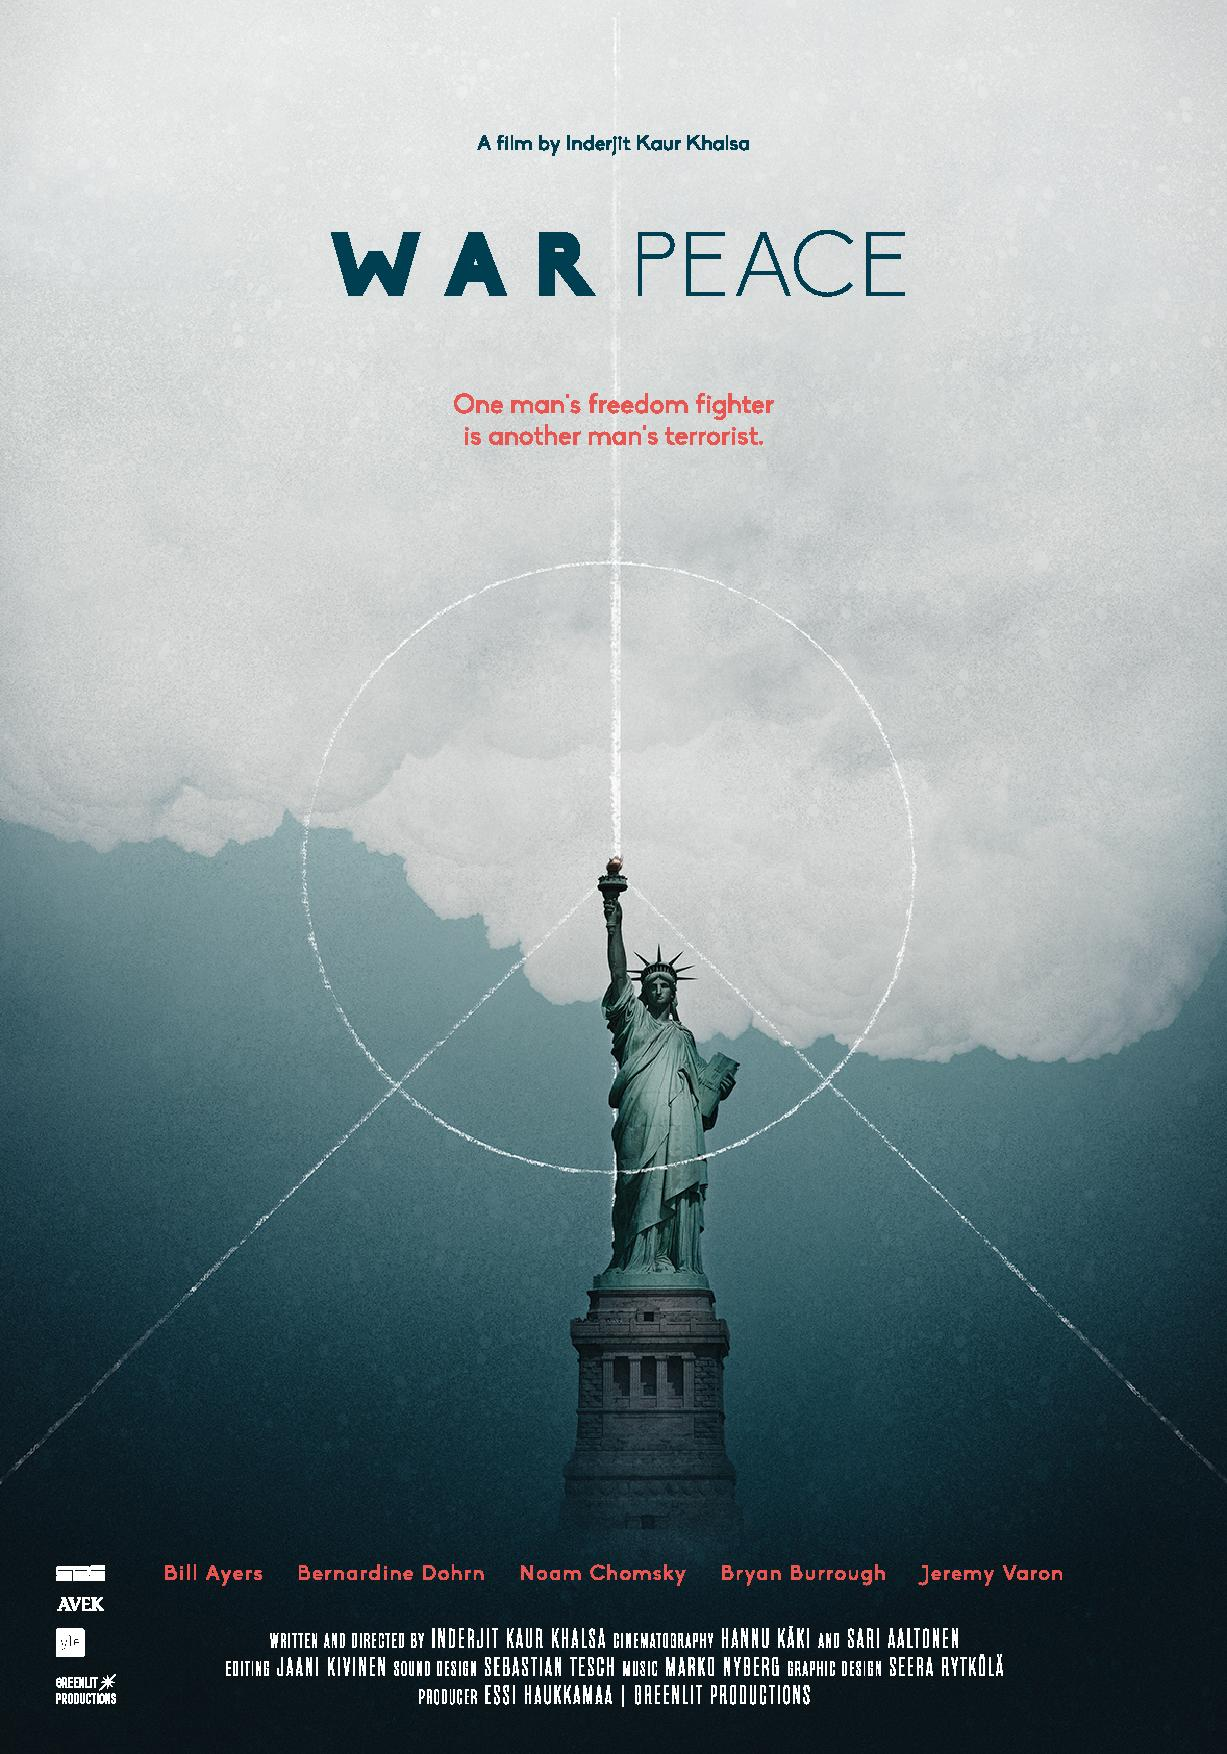 warpeace_poster_rgb_a4-page-001.jpg